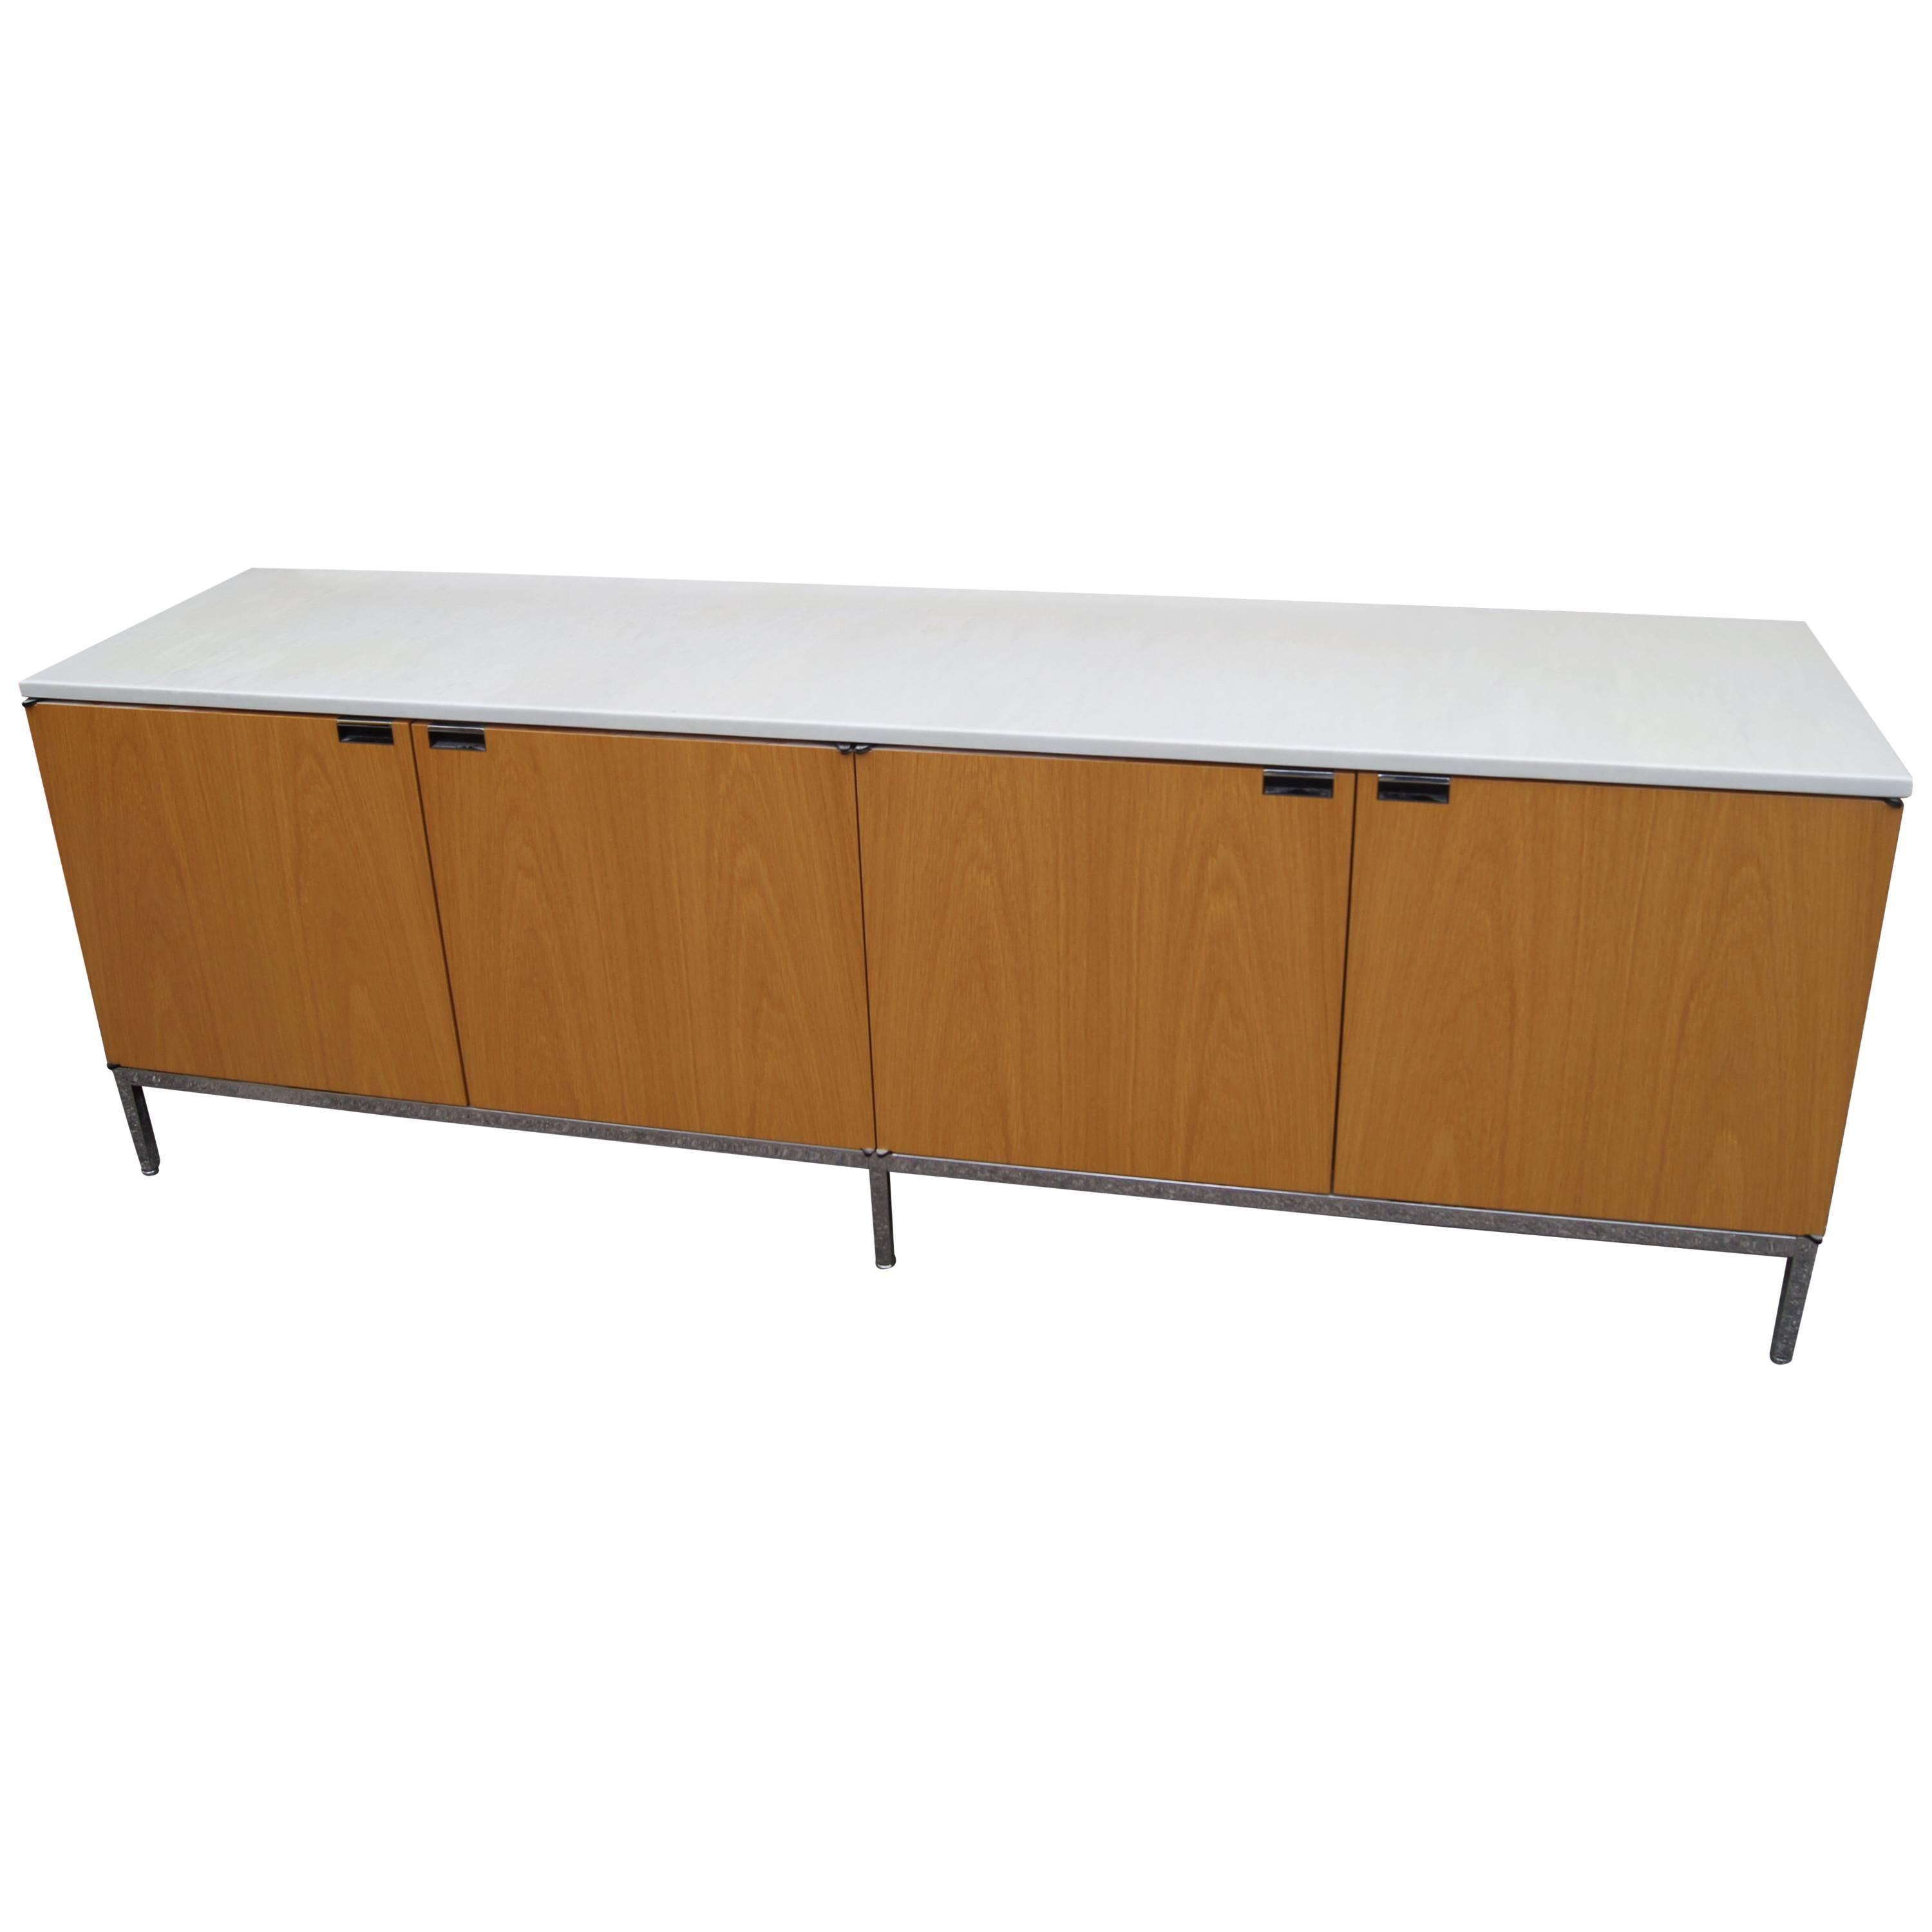 Oak Credenza with Marble Top by Florence Knoll for Knoll